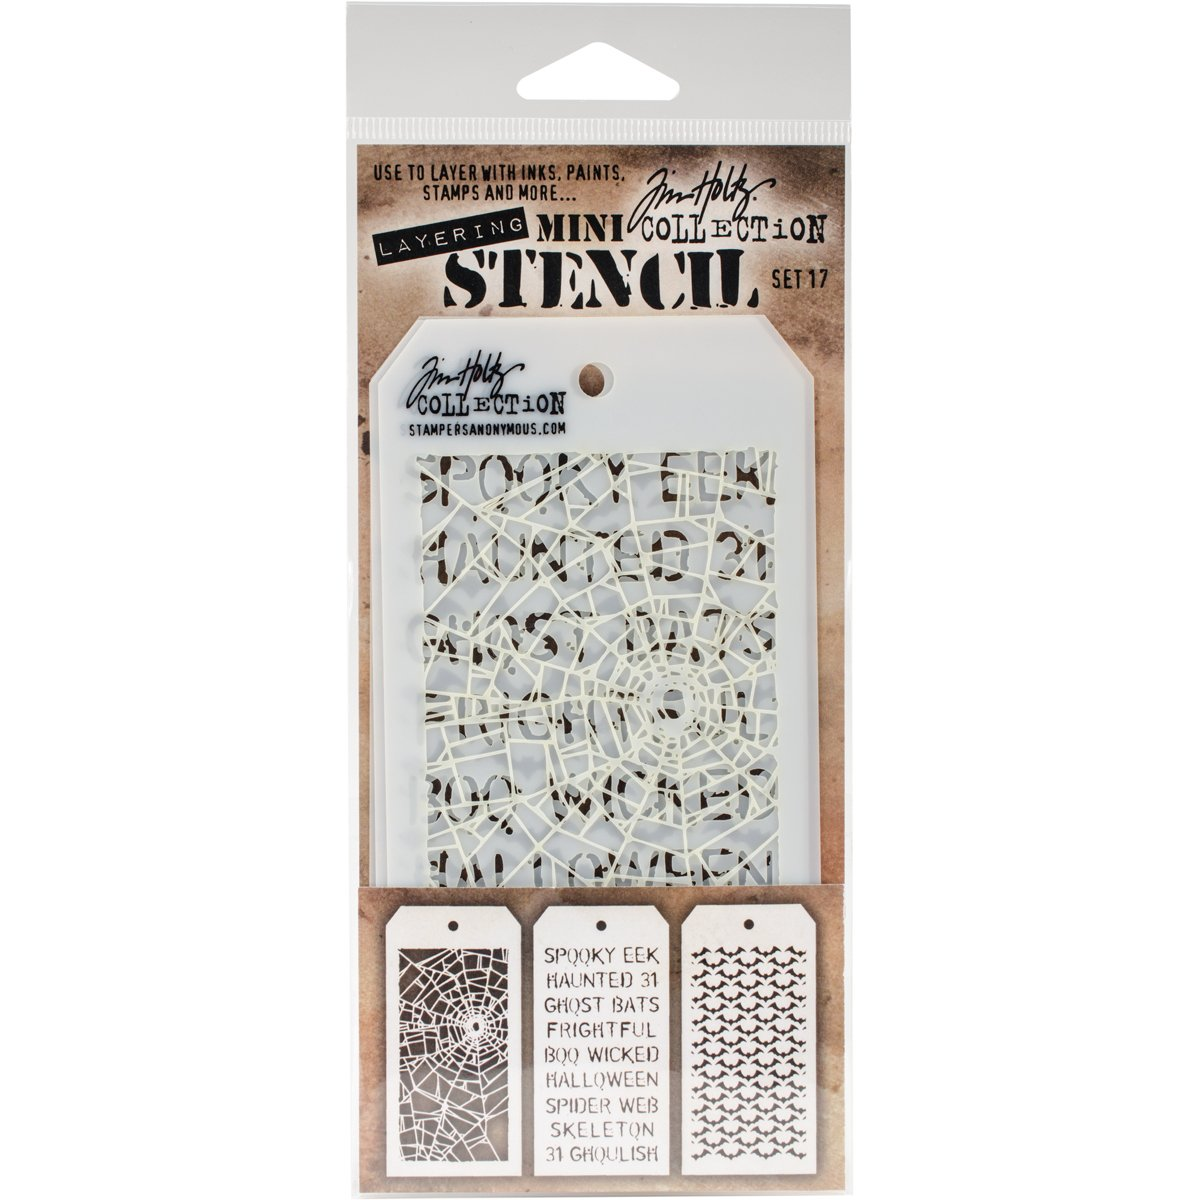 Stampers Anonymous Tim Holtz Mini #13 Layering Stencil